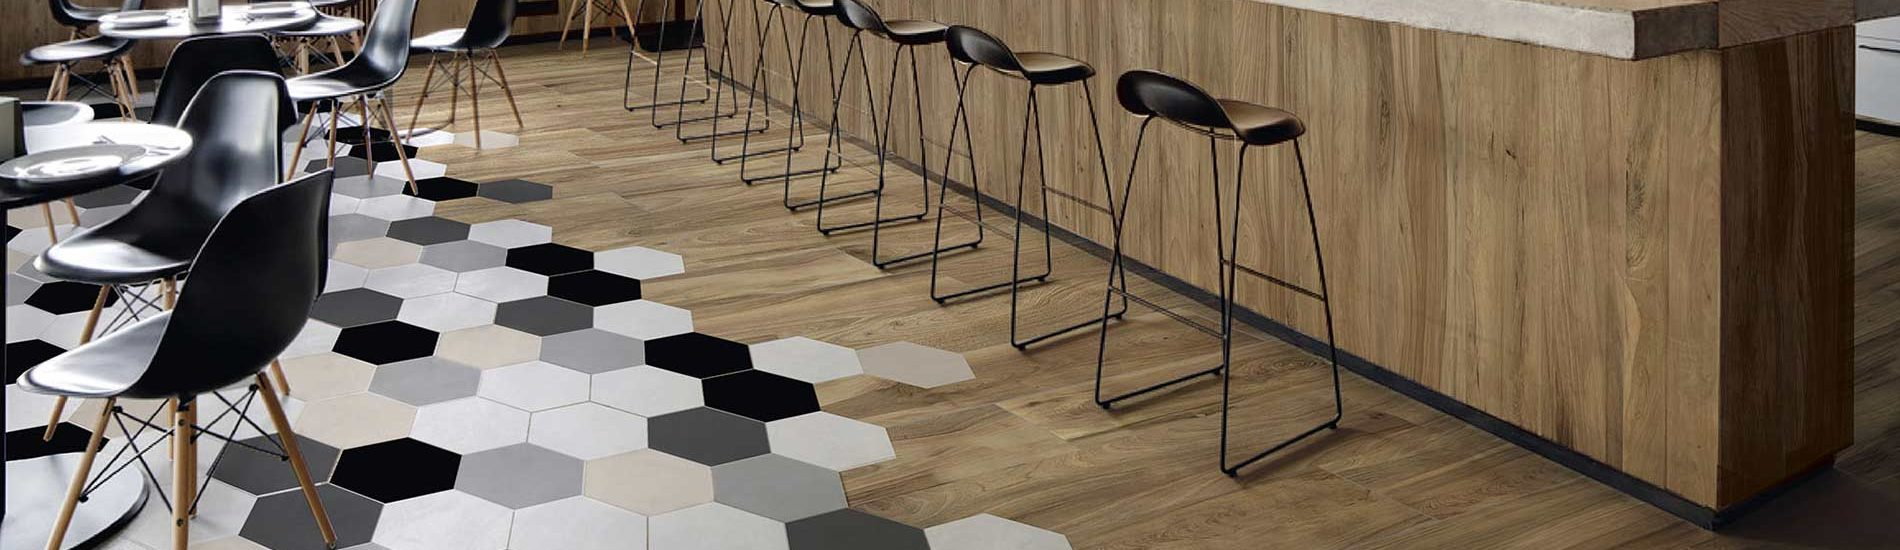 banner-hexa-hexagon-floor-wall-tile-itt-saniceramica-spanish